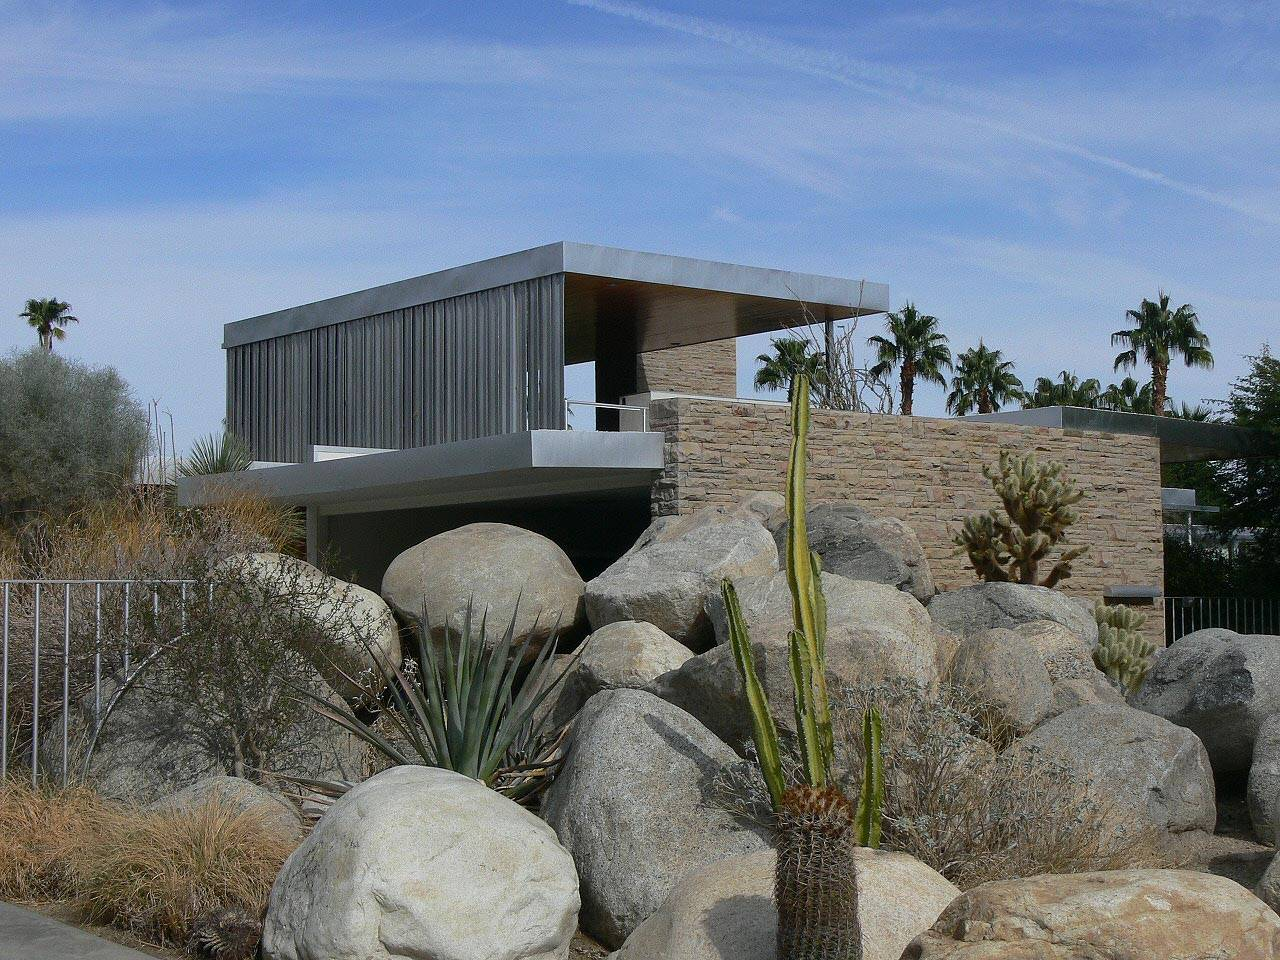 openhouse-barcelona-architecture-kaufmann-house-palm-springs-richard-neutra-1